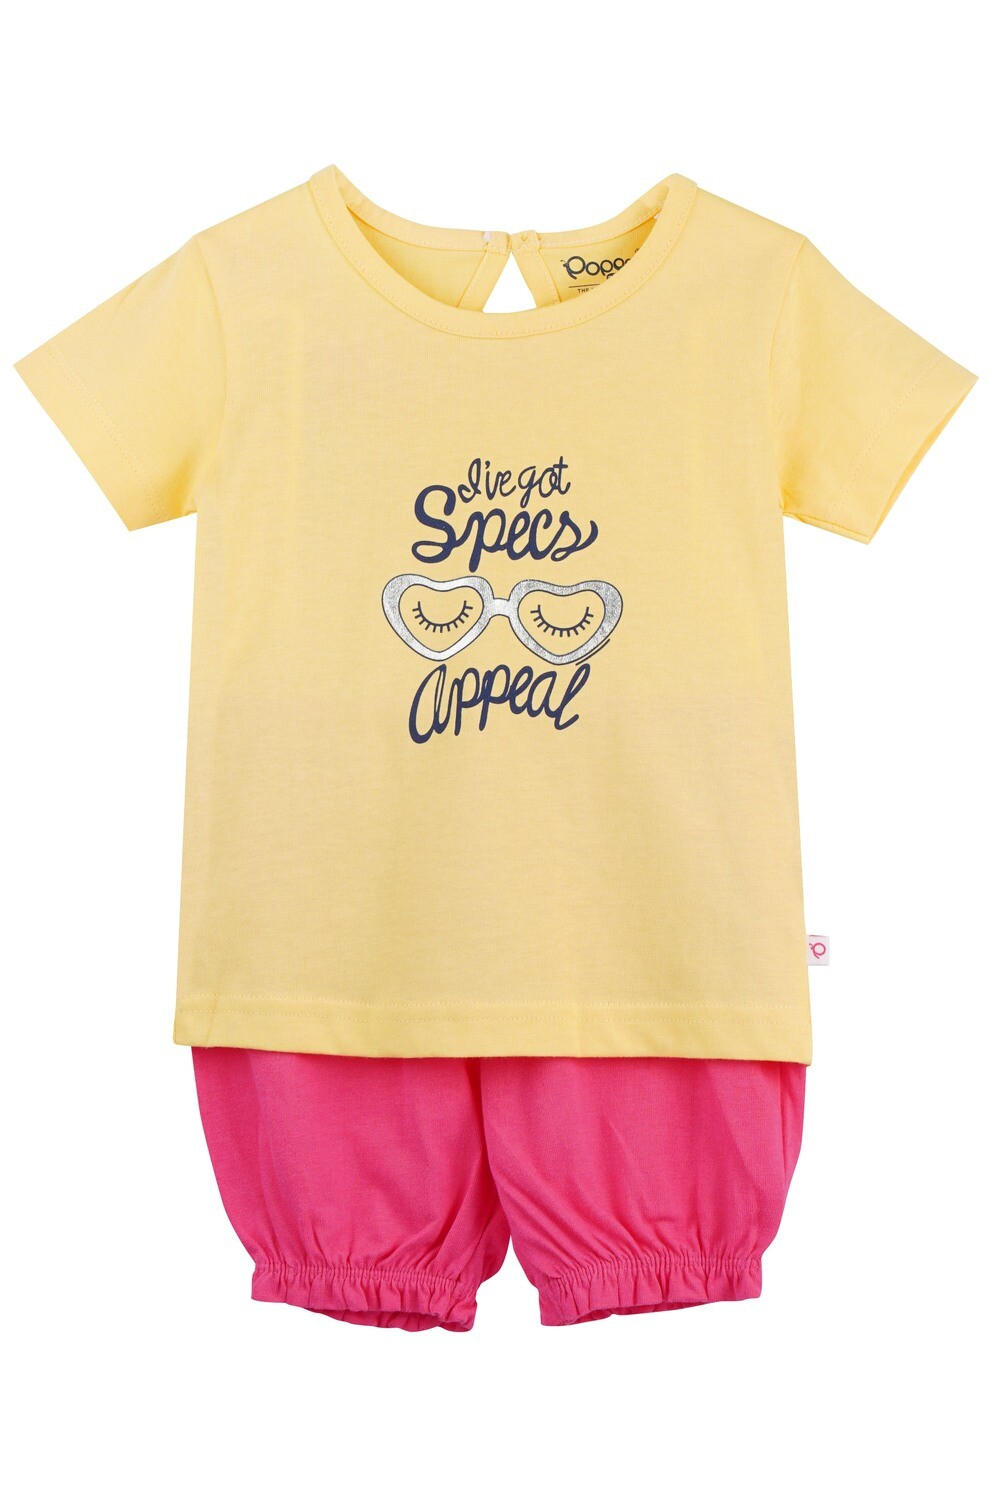 LEVINE Popcorn Half sleeve Top and Shorts for Baby Girls